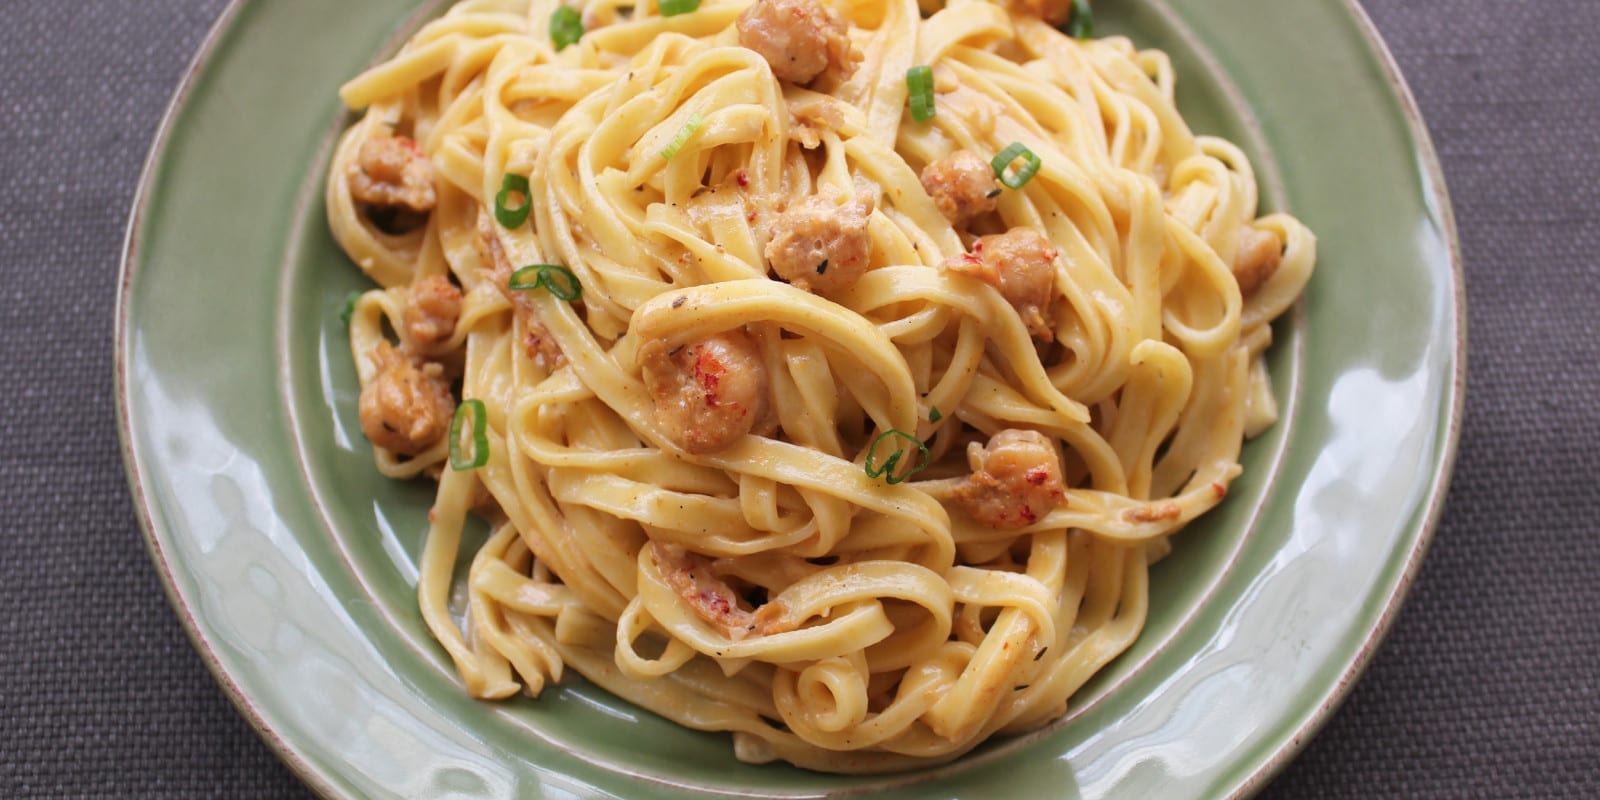 Emeril's Crawfish <br> Fettuccini and More